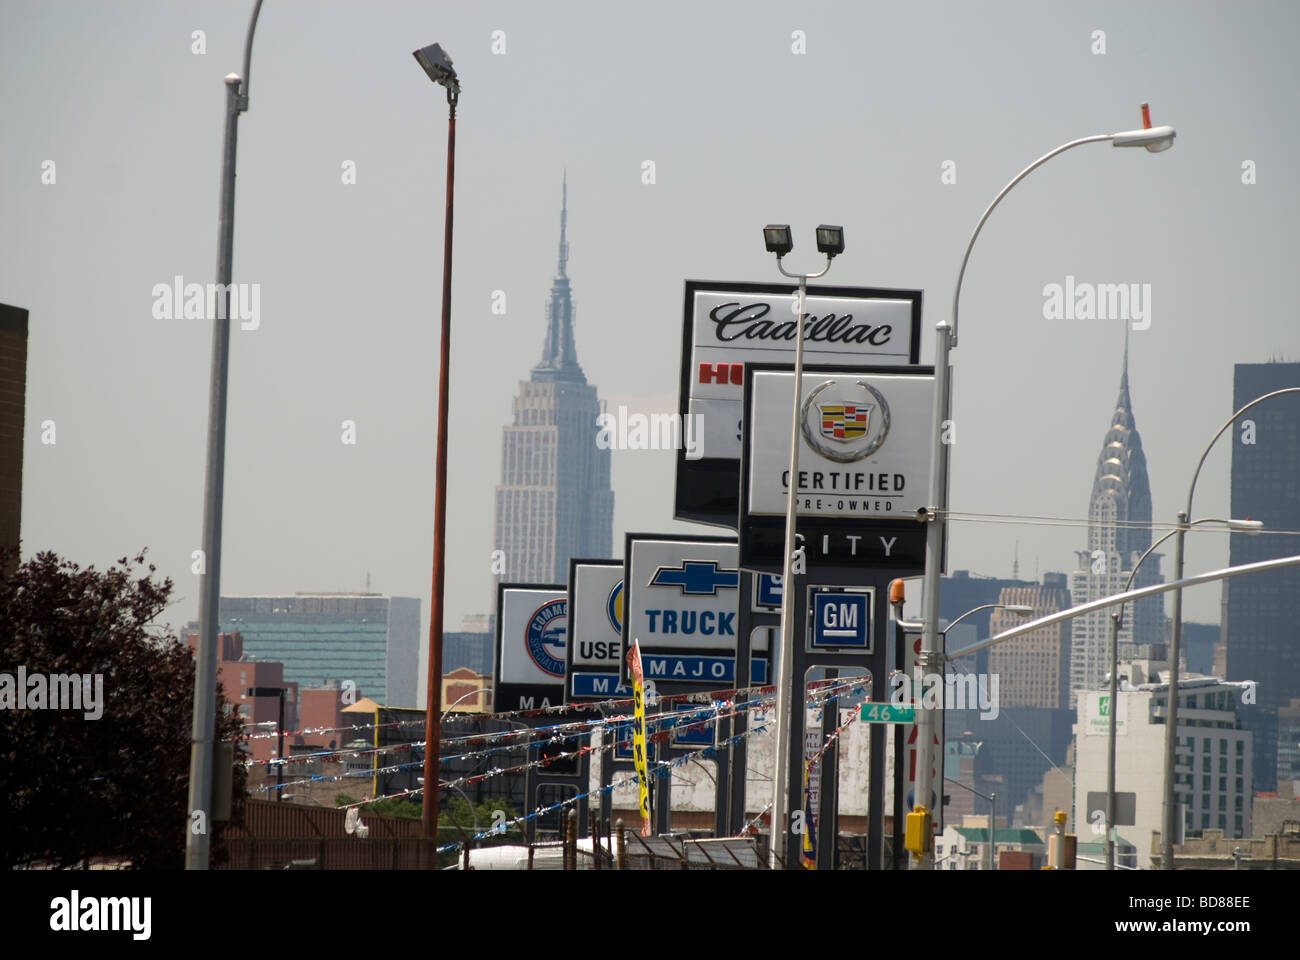 Used and pre owned automobiles are offered for sale at car dealers on Northern Boulevard in the borough of Queens - Stock Image